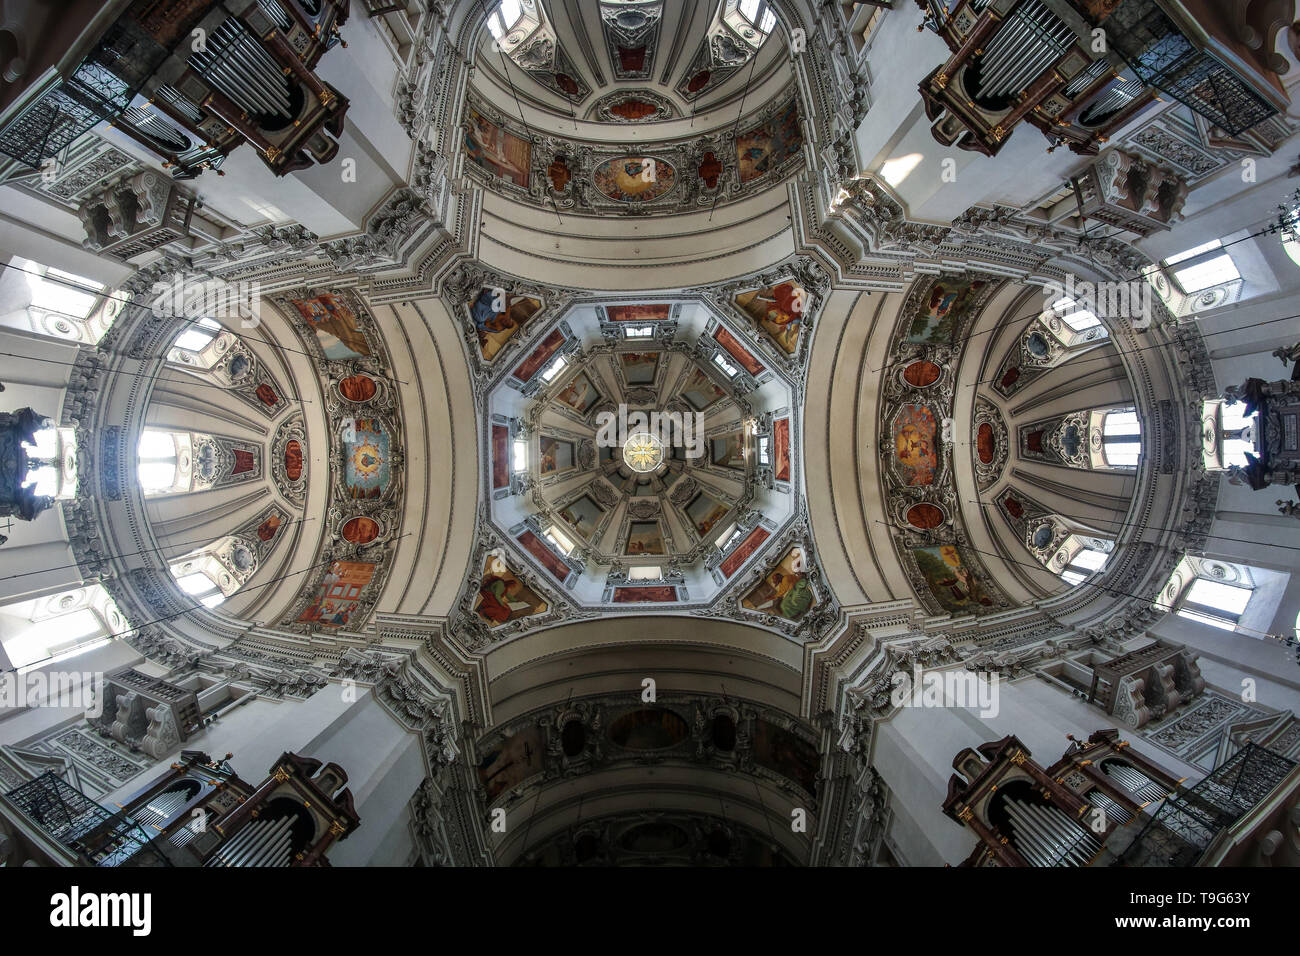 The nice paintings on the ceiling in the interior of the cathedral in Salzburg in Austria. Stock Photo